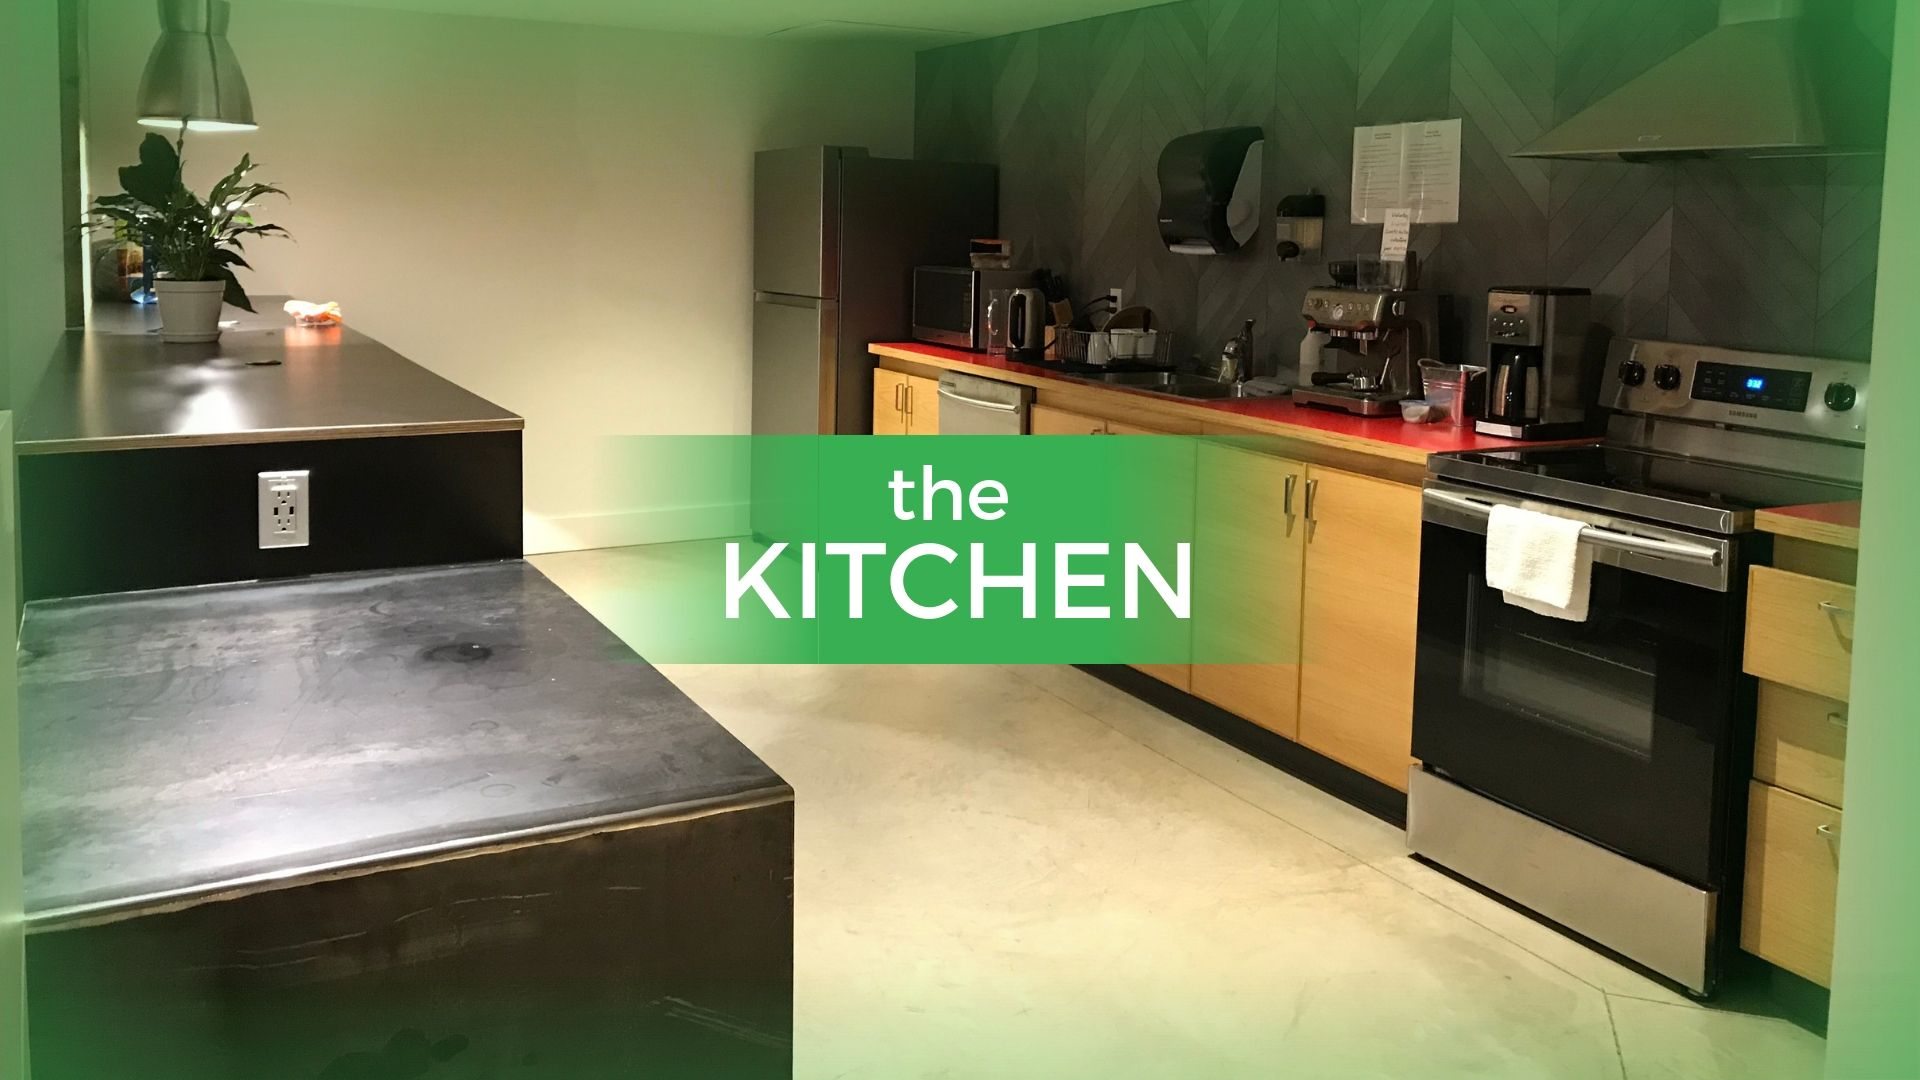 Kitchen (Microwave; stove; dishes; sink; dishwasher)